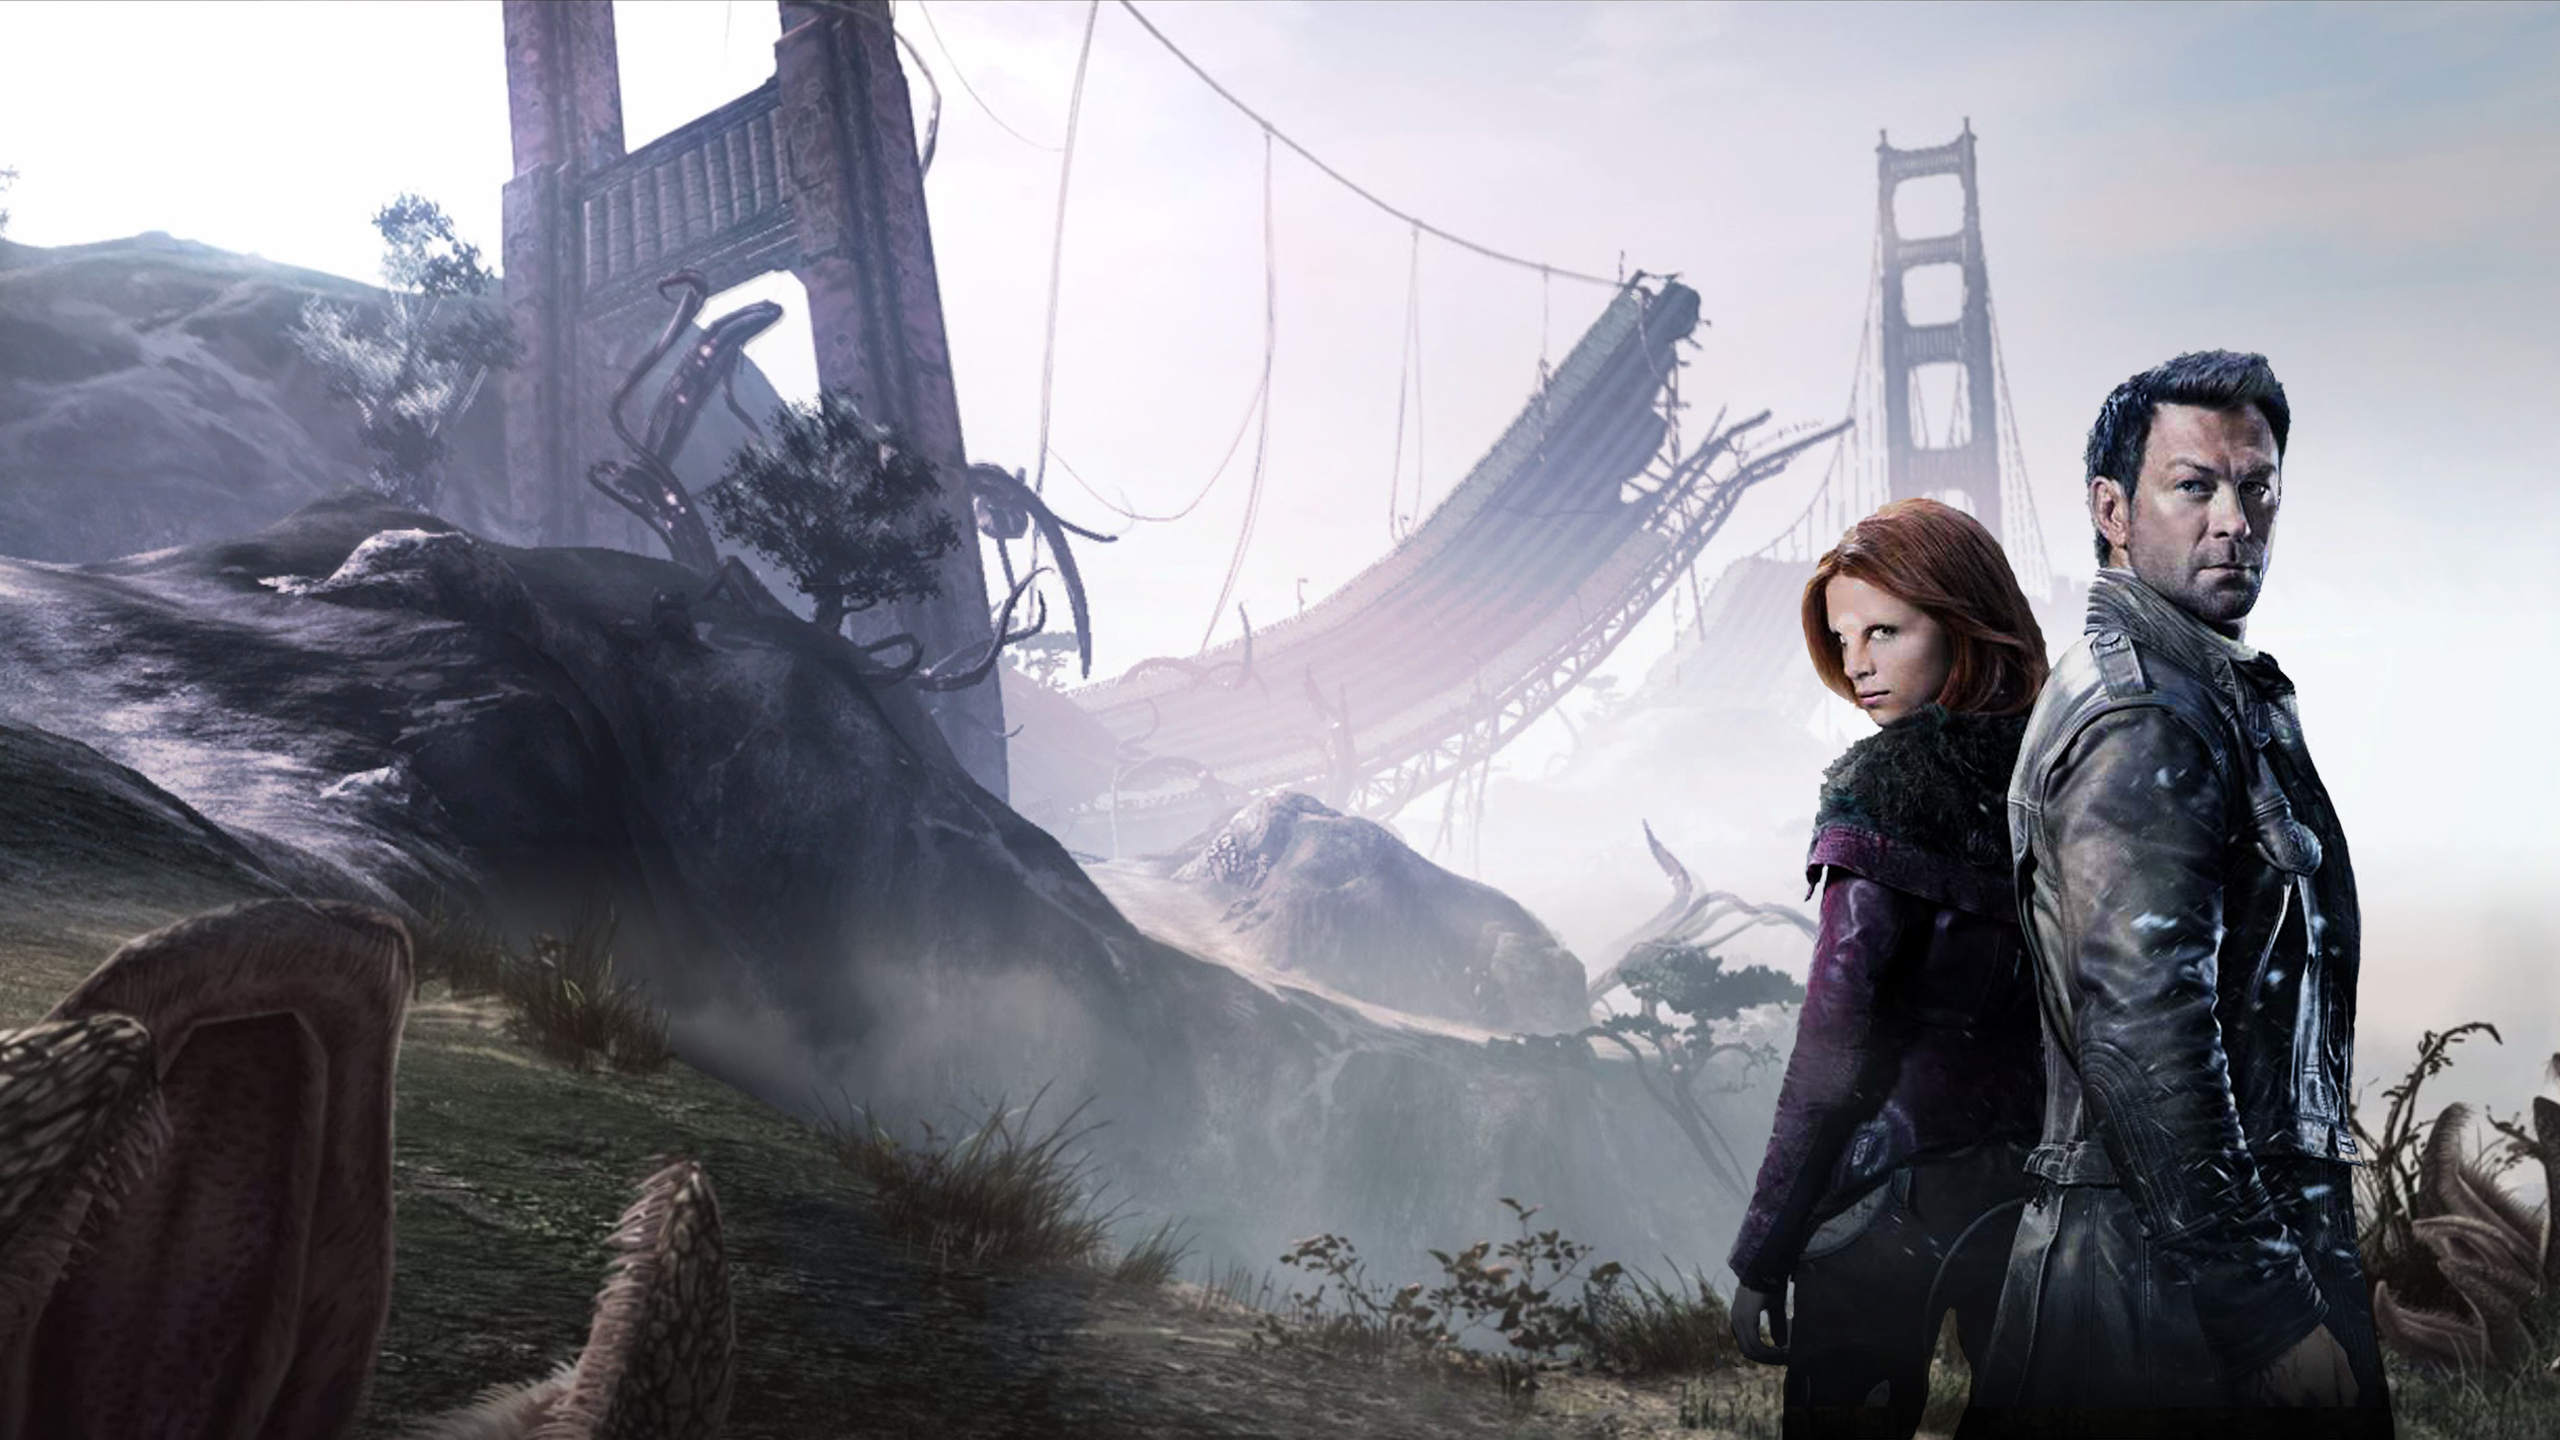 defiance wallpaper qhd by gerthold customization wallpaper science 2560x1440